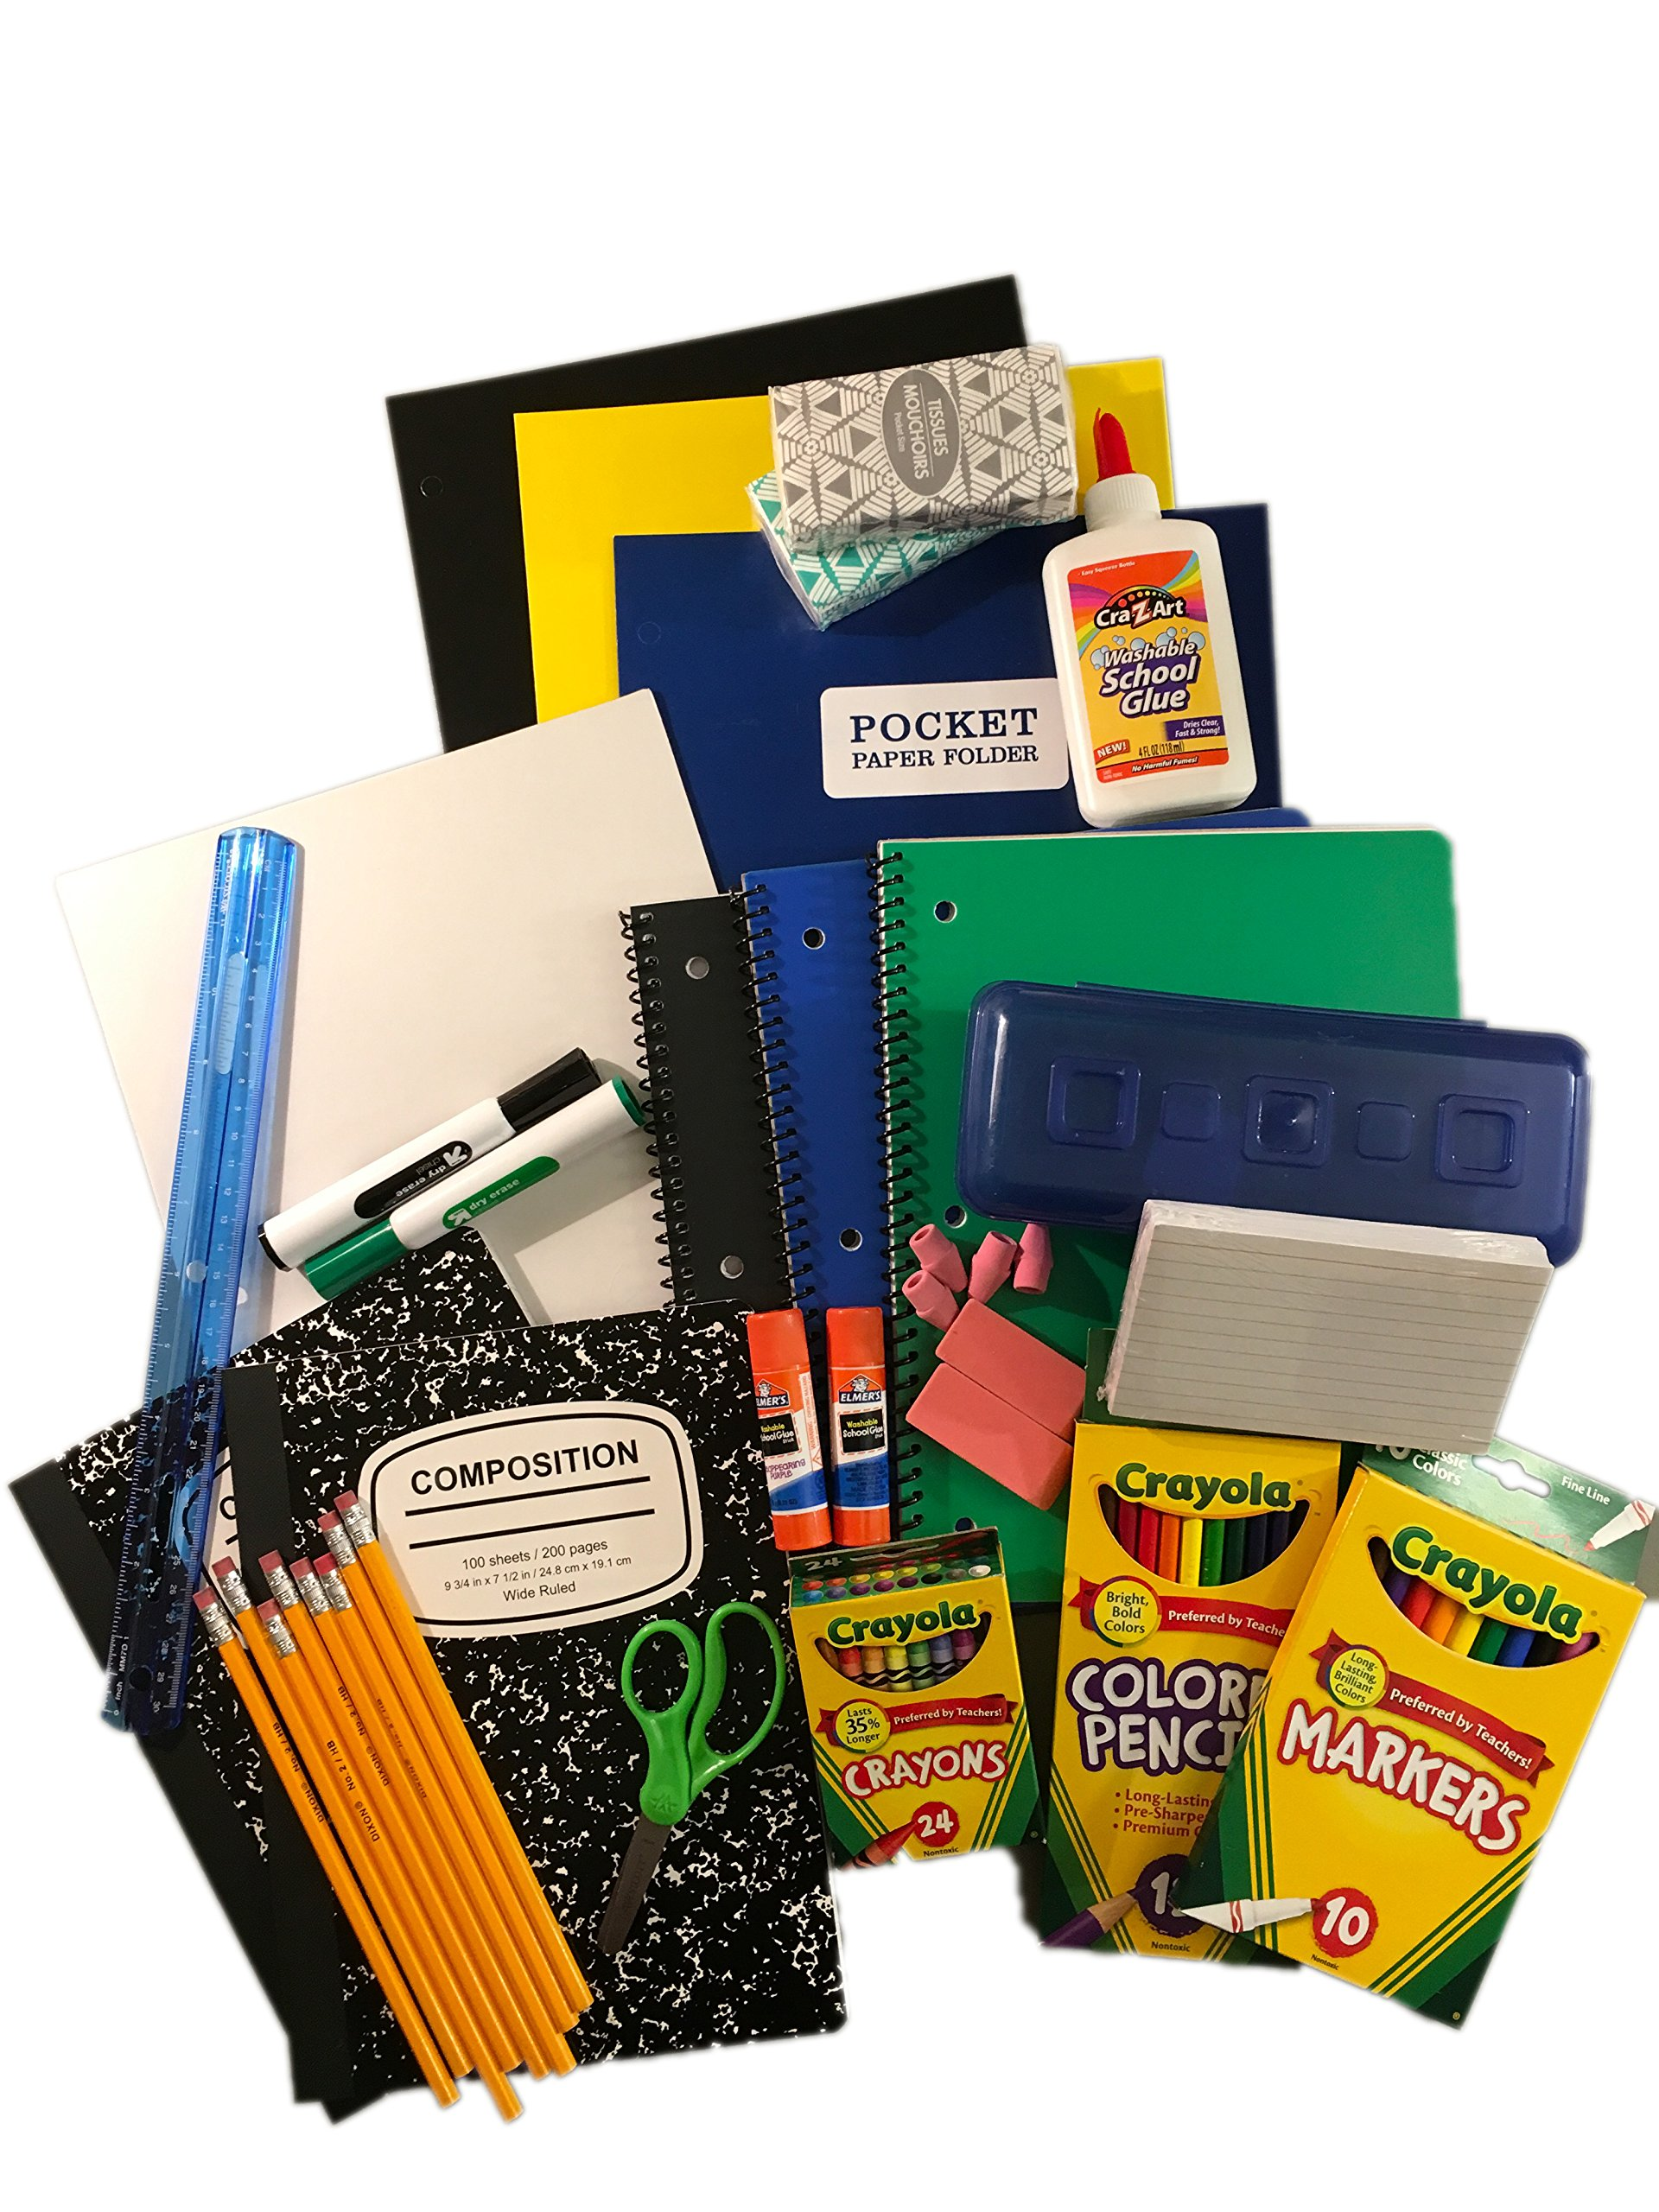 Complete Wide Rule Basic School Supply List Kit Bundle for Elementary to Middle